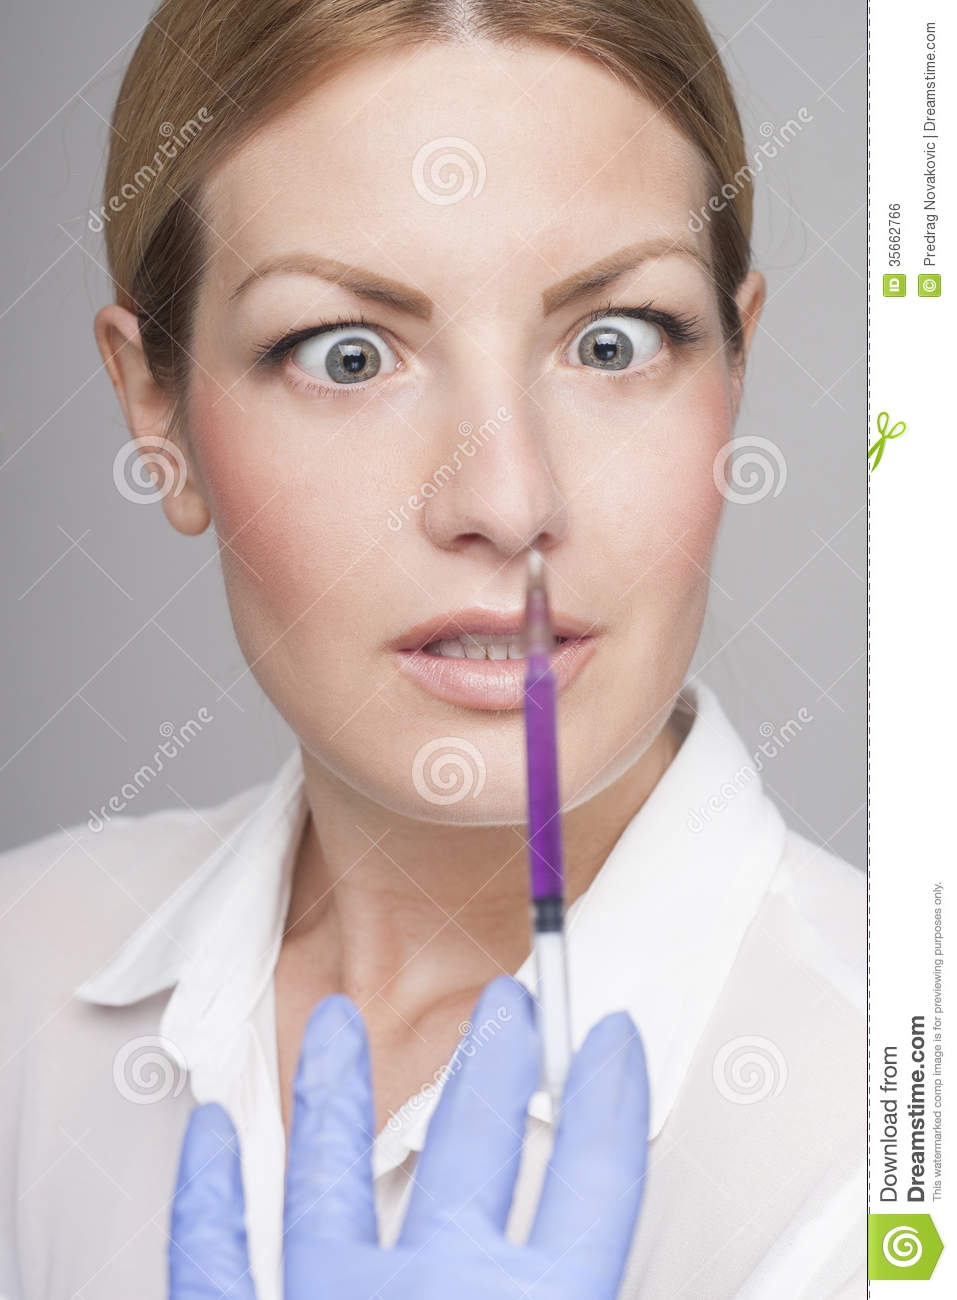 Frightened Face Royalty Free Stock Image - Image: 35662766